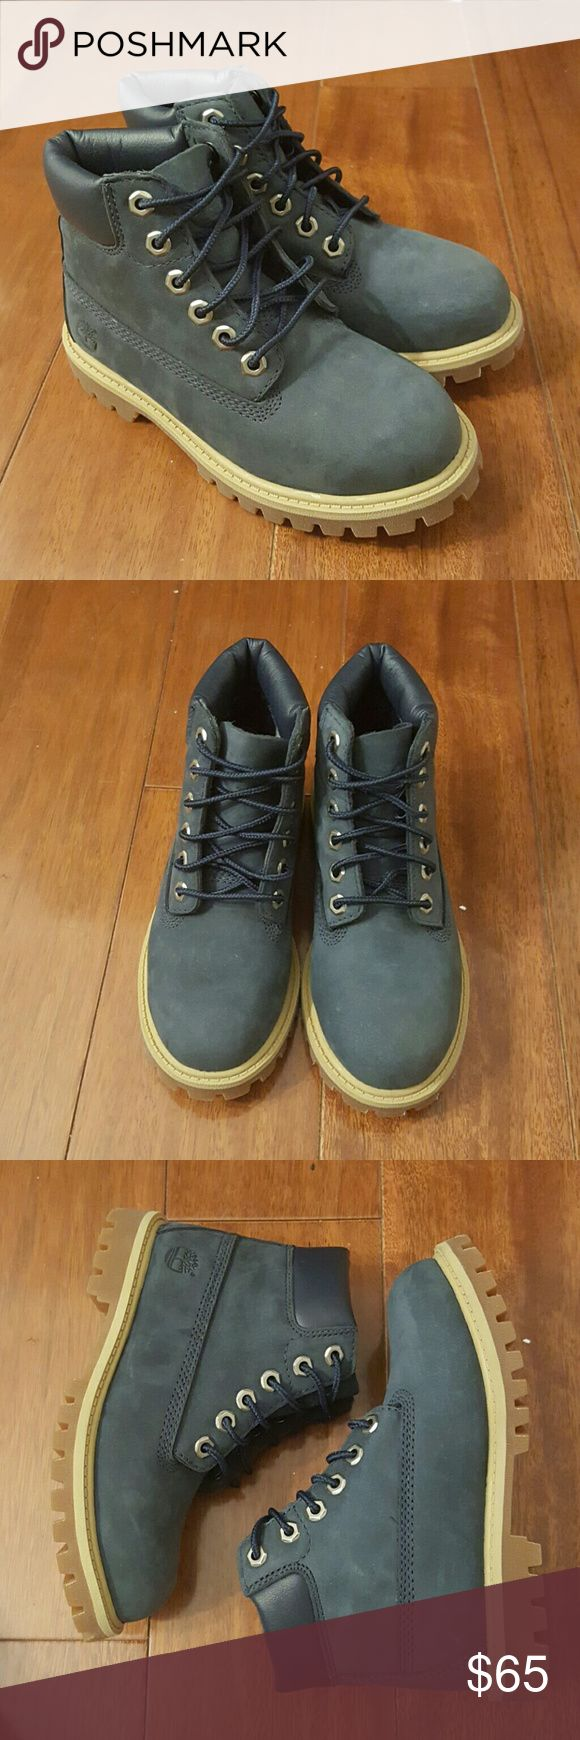 """NAVY BLUE TIMBERLAND 6"""" PREMIUM BOOTS (Toddlers) BRAND NEW TIMBERLAND BOOTS THEY ARE WATERPROOF SIZE 11.5 (BOYS' TODDLER) COMES IN ORIGINAL BOX!!  -MAKE ME AN OFFER- Timberland Shoes Boots"""